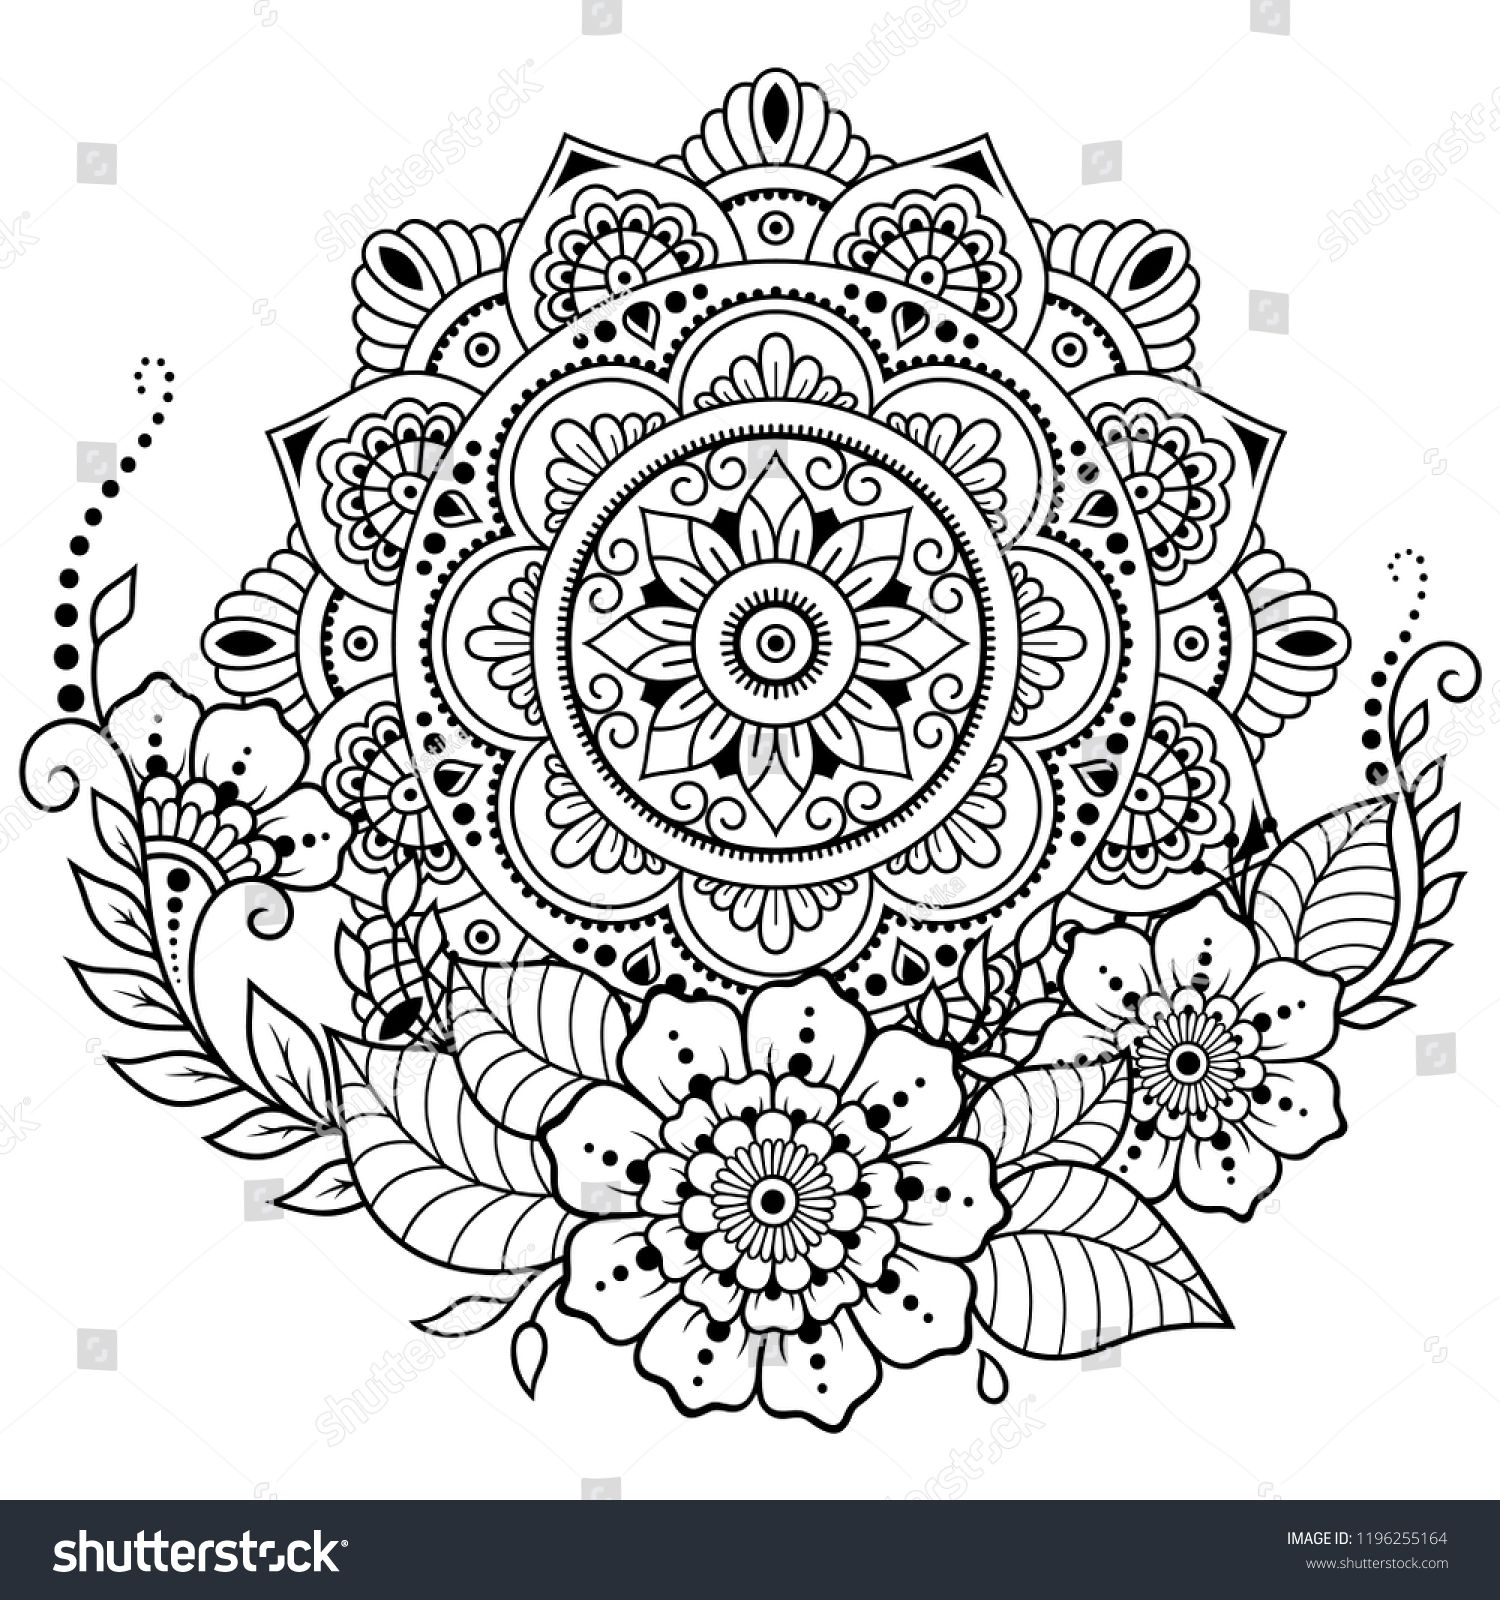 7facfe1bb Circular pattern in form of mandala with flower for Henna, Mehndi, tattoo,  decoration. Decorative ornament in ethnic oriental style. Coloring book  page.